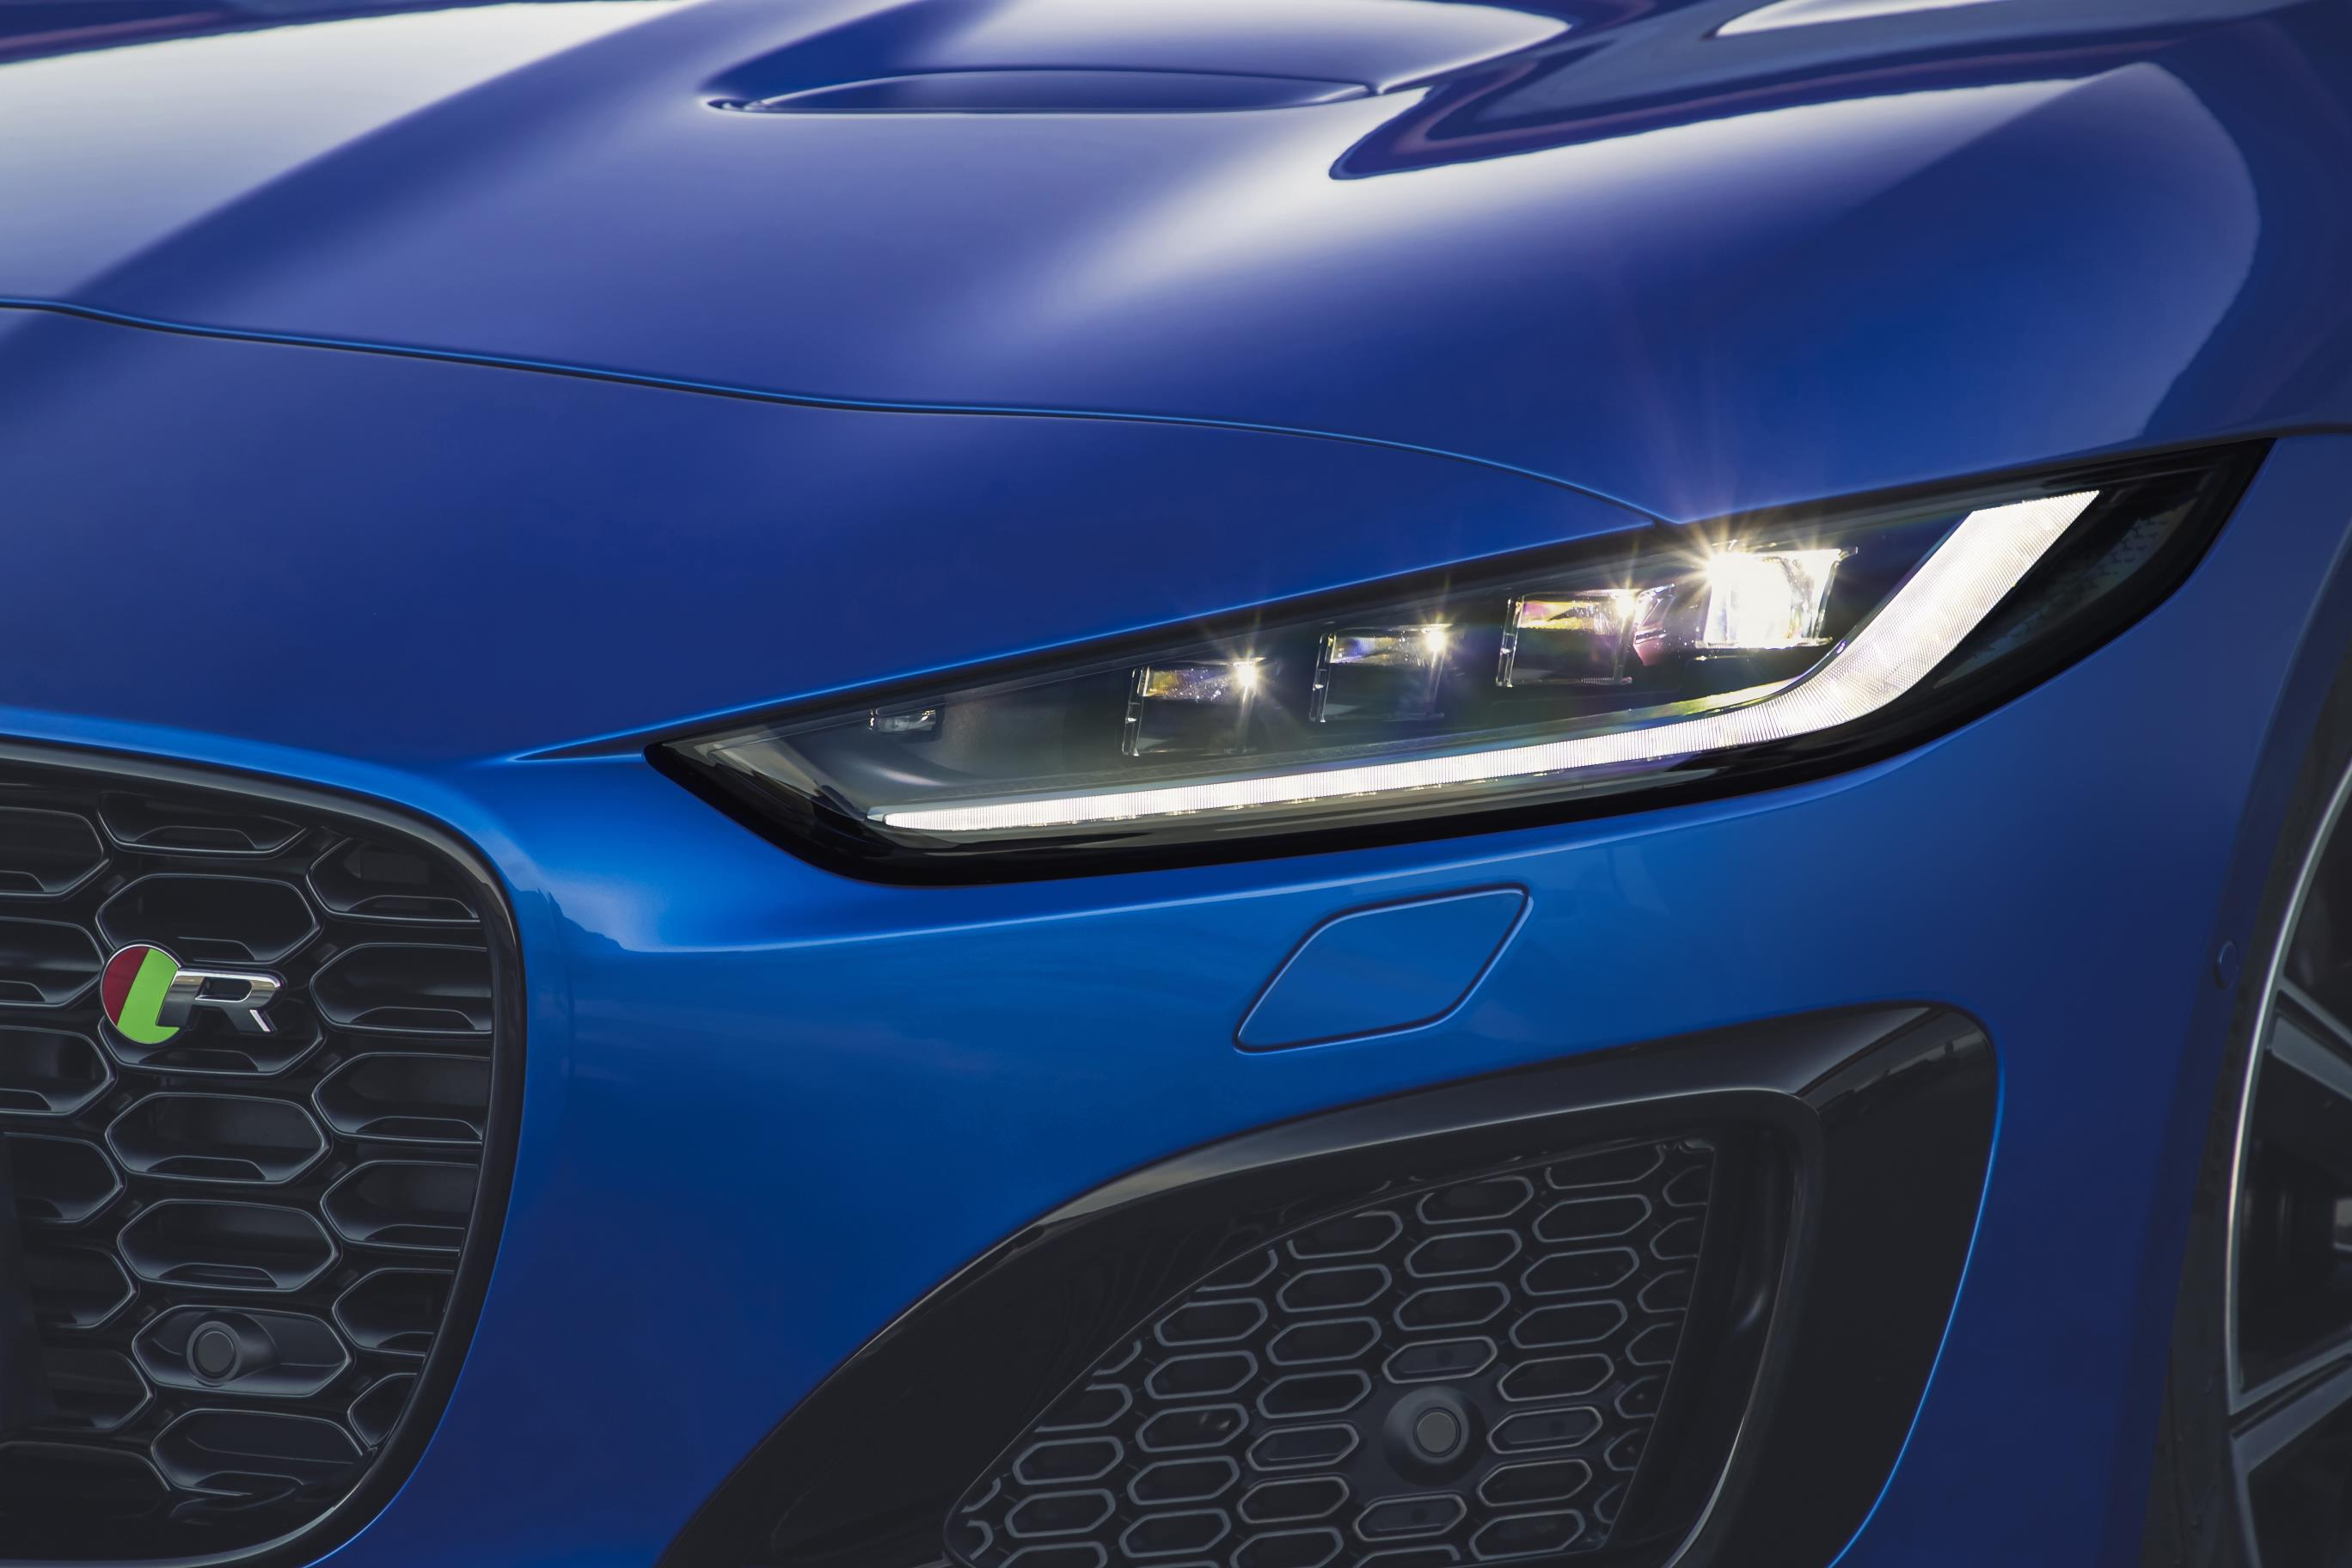 The headlights have been heavily revised